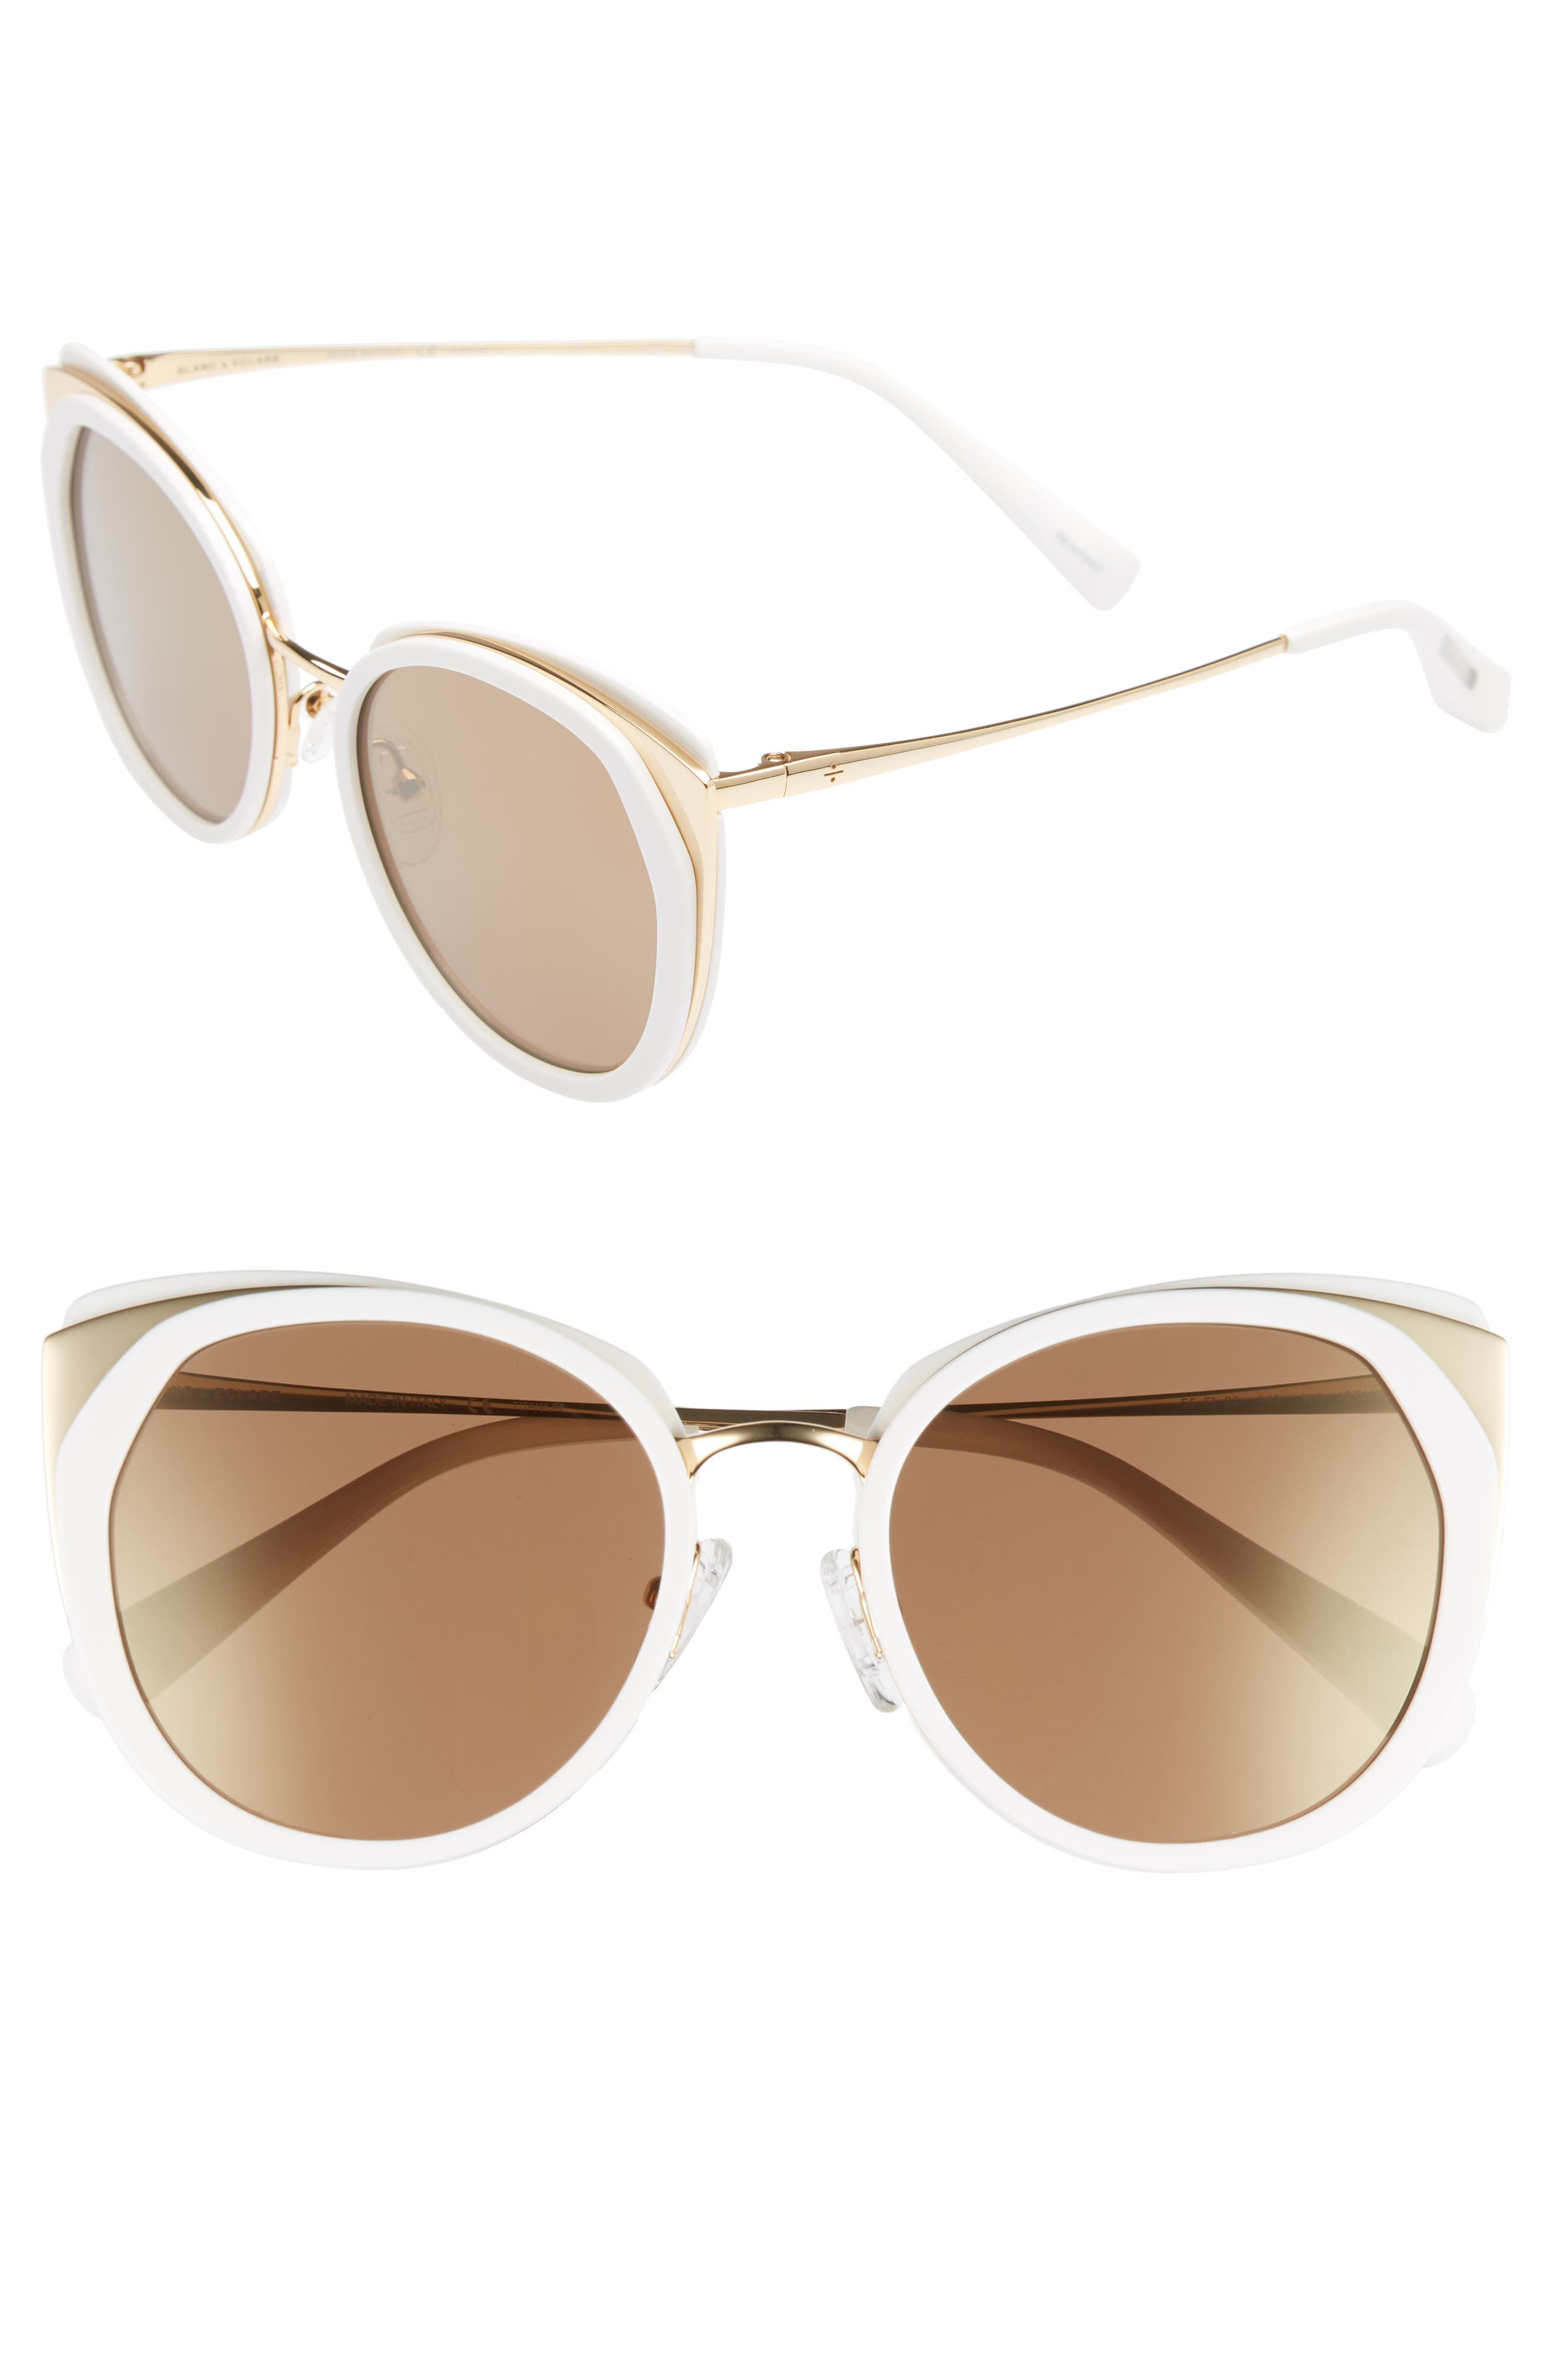 BLANC & ECLARE Istanbul 55mm Polarized Cat Eye Sunglasses,                             Main thumbnail 1, color,                             Snow/ Gold/ Solid Gold Mirror